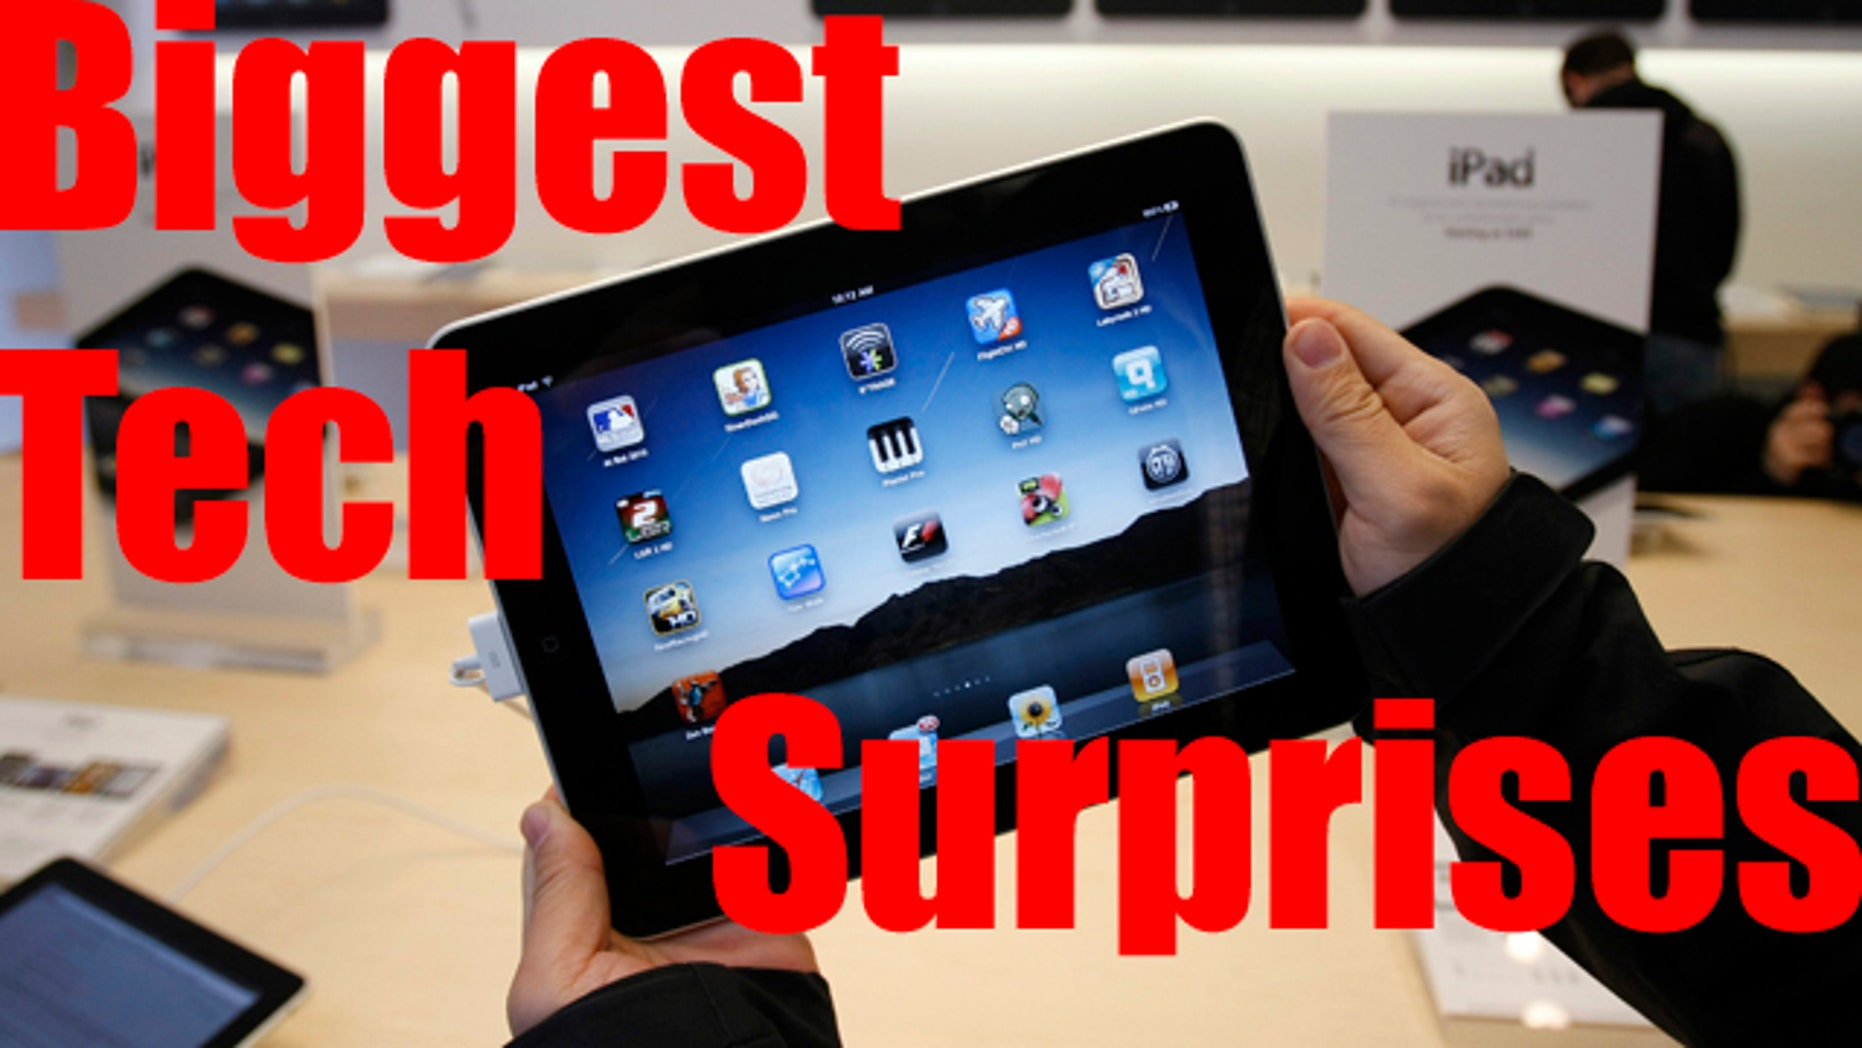 The amazing success of the iPad -- countered by the missteps Apple made with the iPhone -- were among the year's biggest technology surprises.